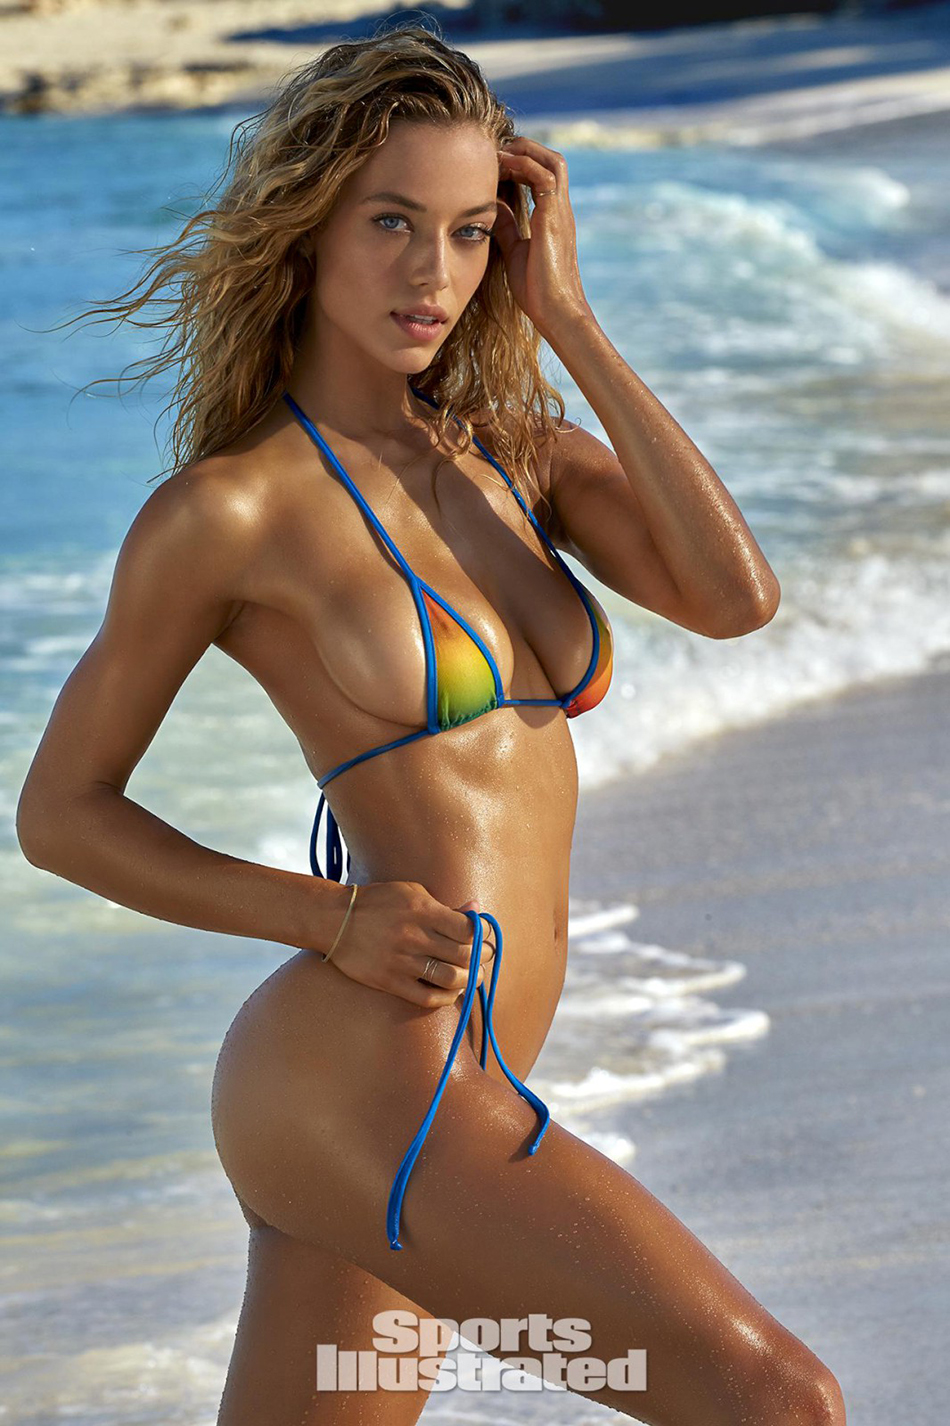 Swimsuit illustrated nude Nude Photos 1